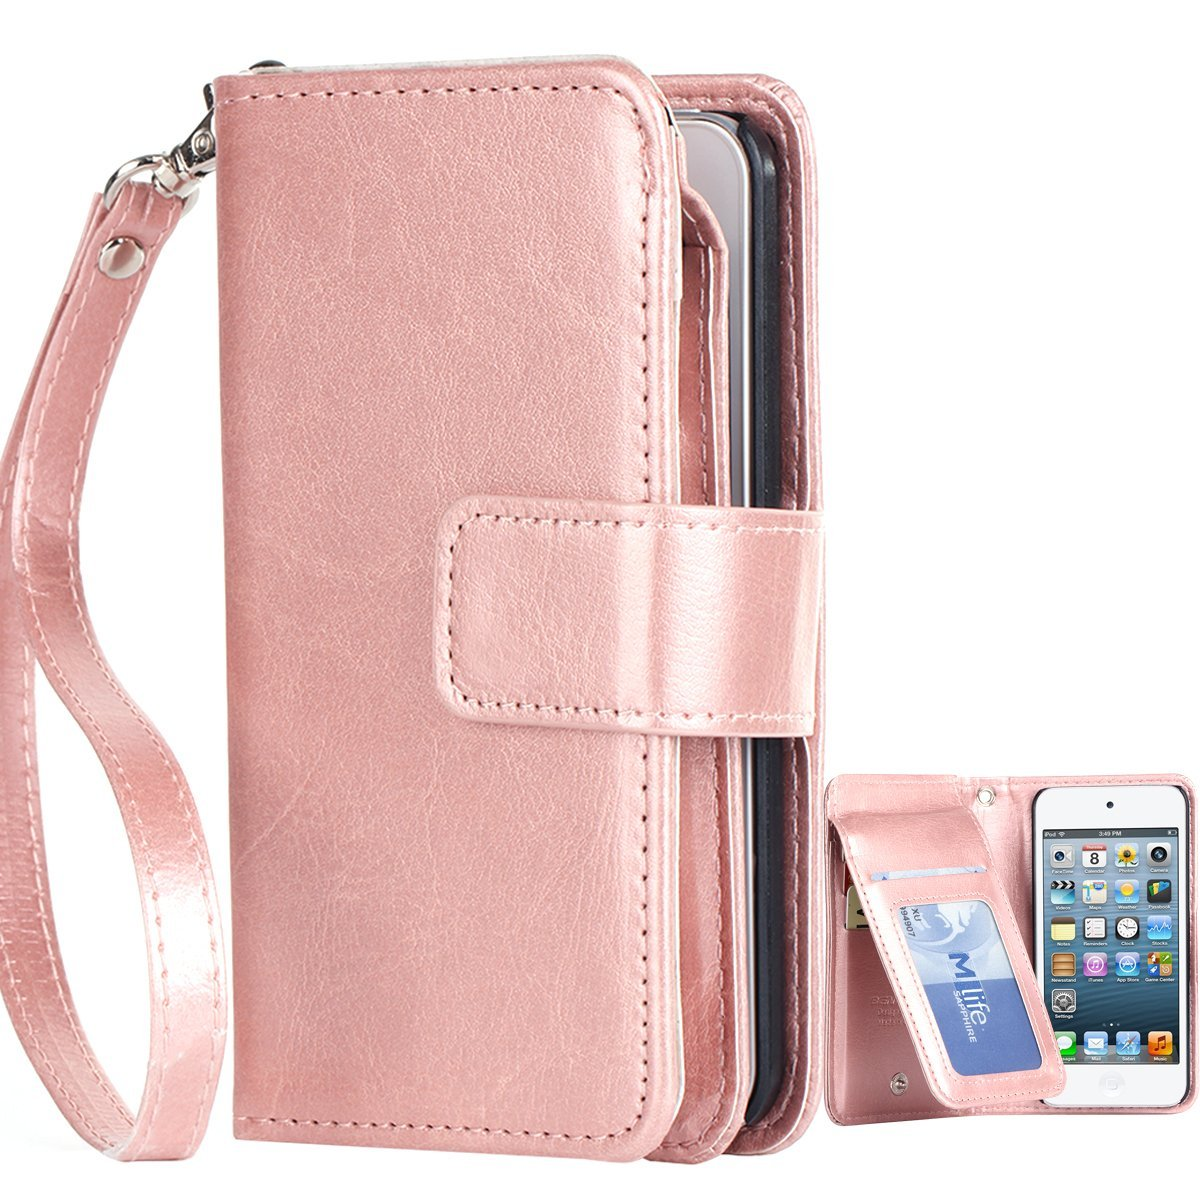 separation shoes 64b7b 612ff Buy iPod 5 Cases, iPod 6 Cases, iPod Touch 6 Wallet Case, BENTOBEN ...